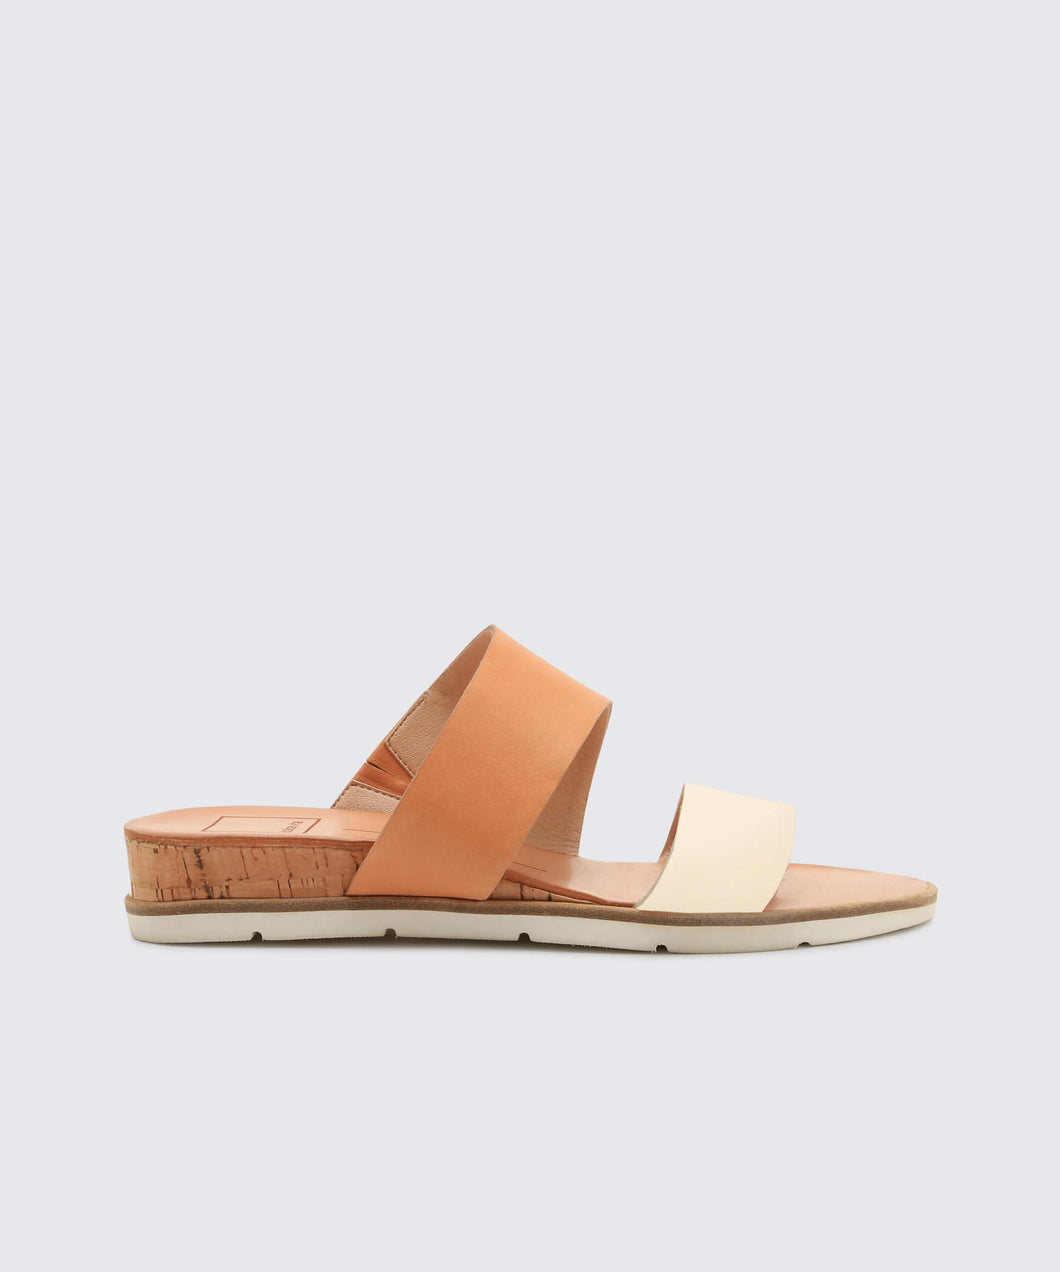 VALA SANDALS IN IVORY -   Dolce Vita